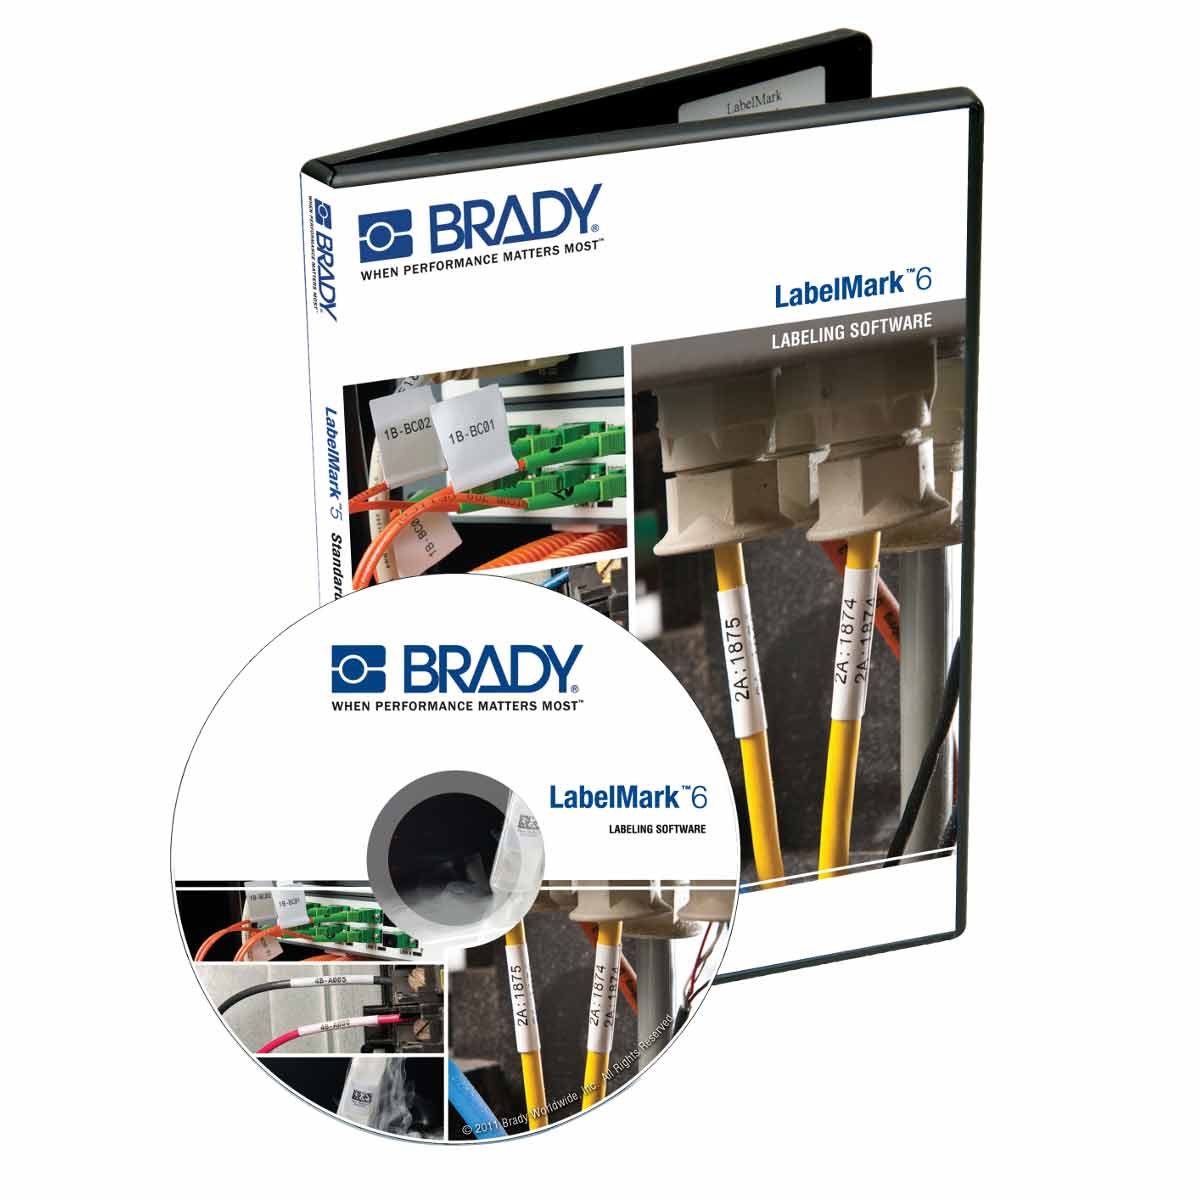 Brady Part Lm6proe 139819 Labelmark 6 Professional Software Home Bmp21 Hand Held Label Printer Electrical Kit